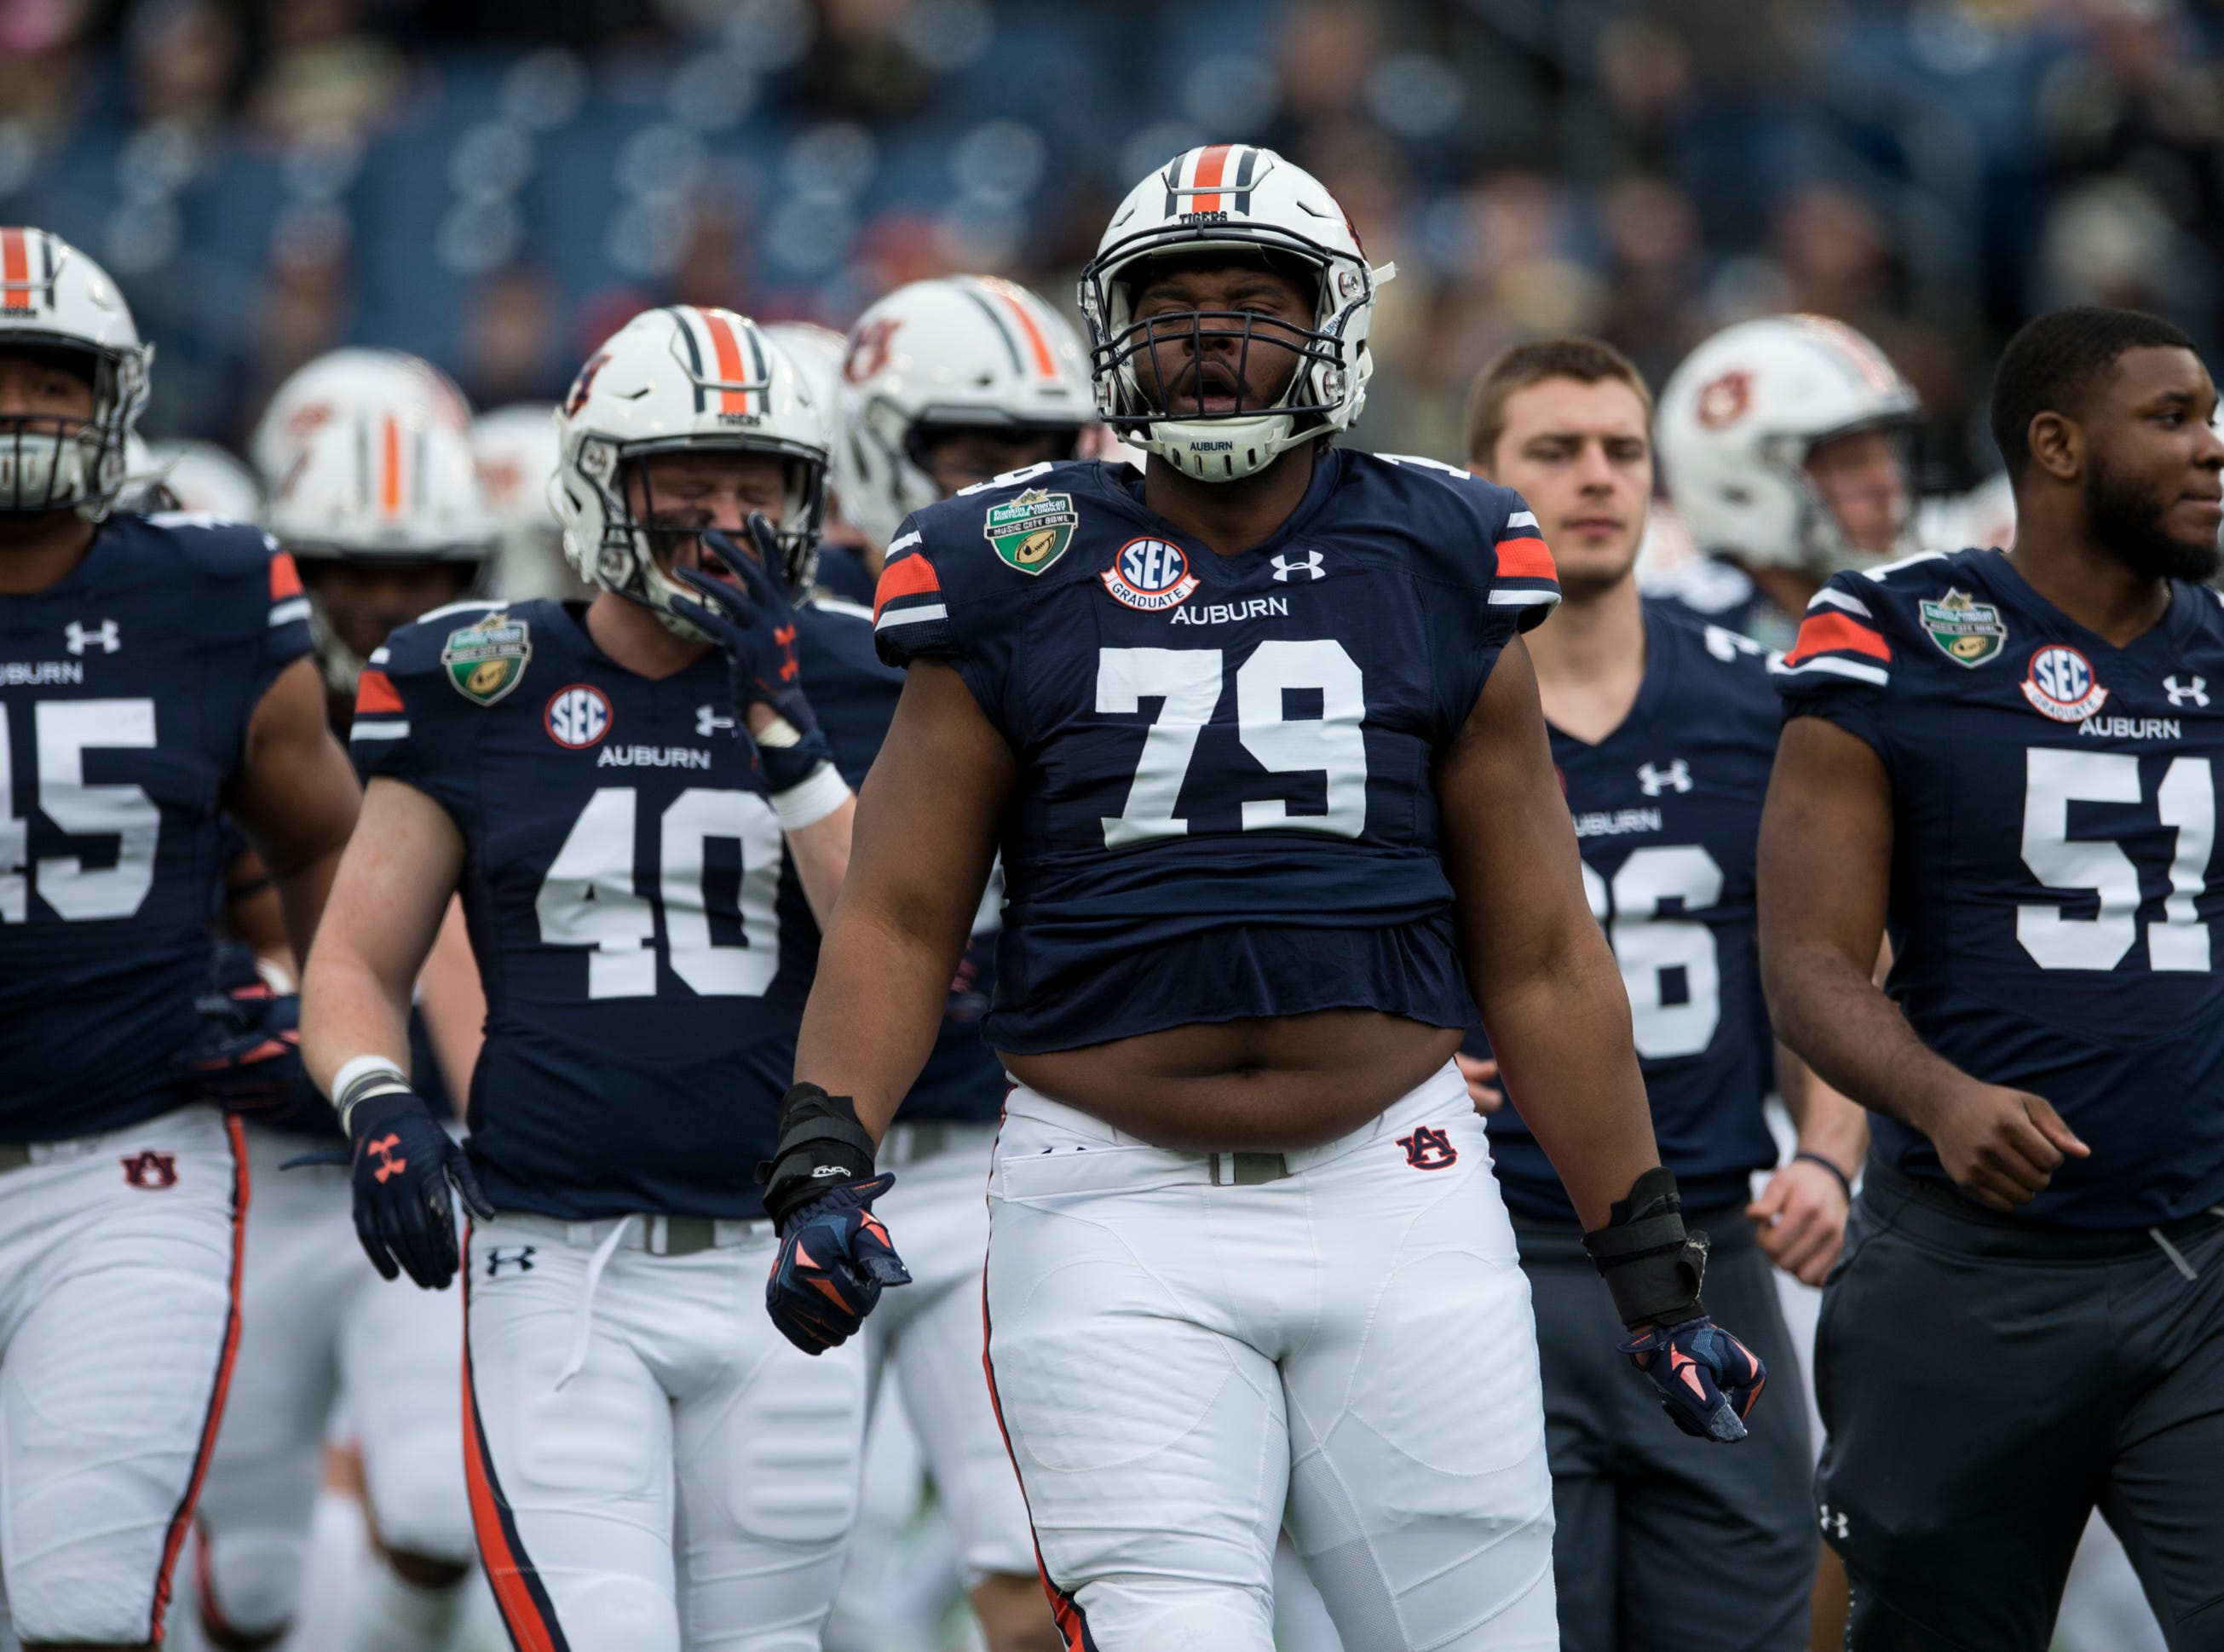 Auburn players get pumped up before the Music City Bowl at Nissan Stadium in Nashville, Tenn., on Friday, Dec. 28, 2018.